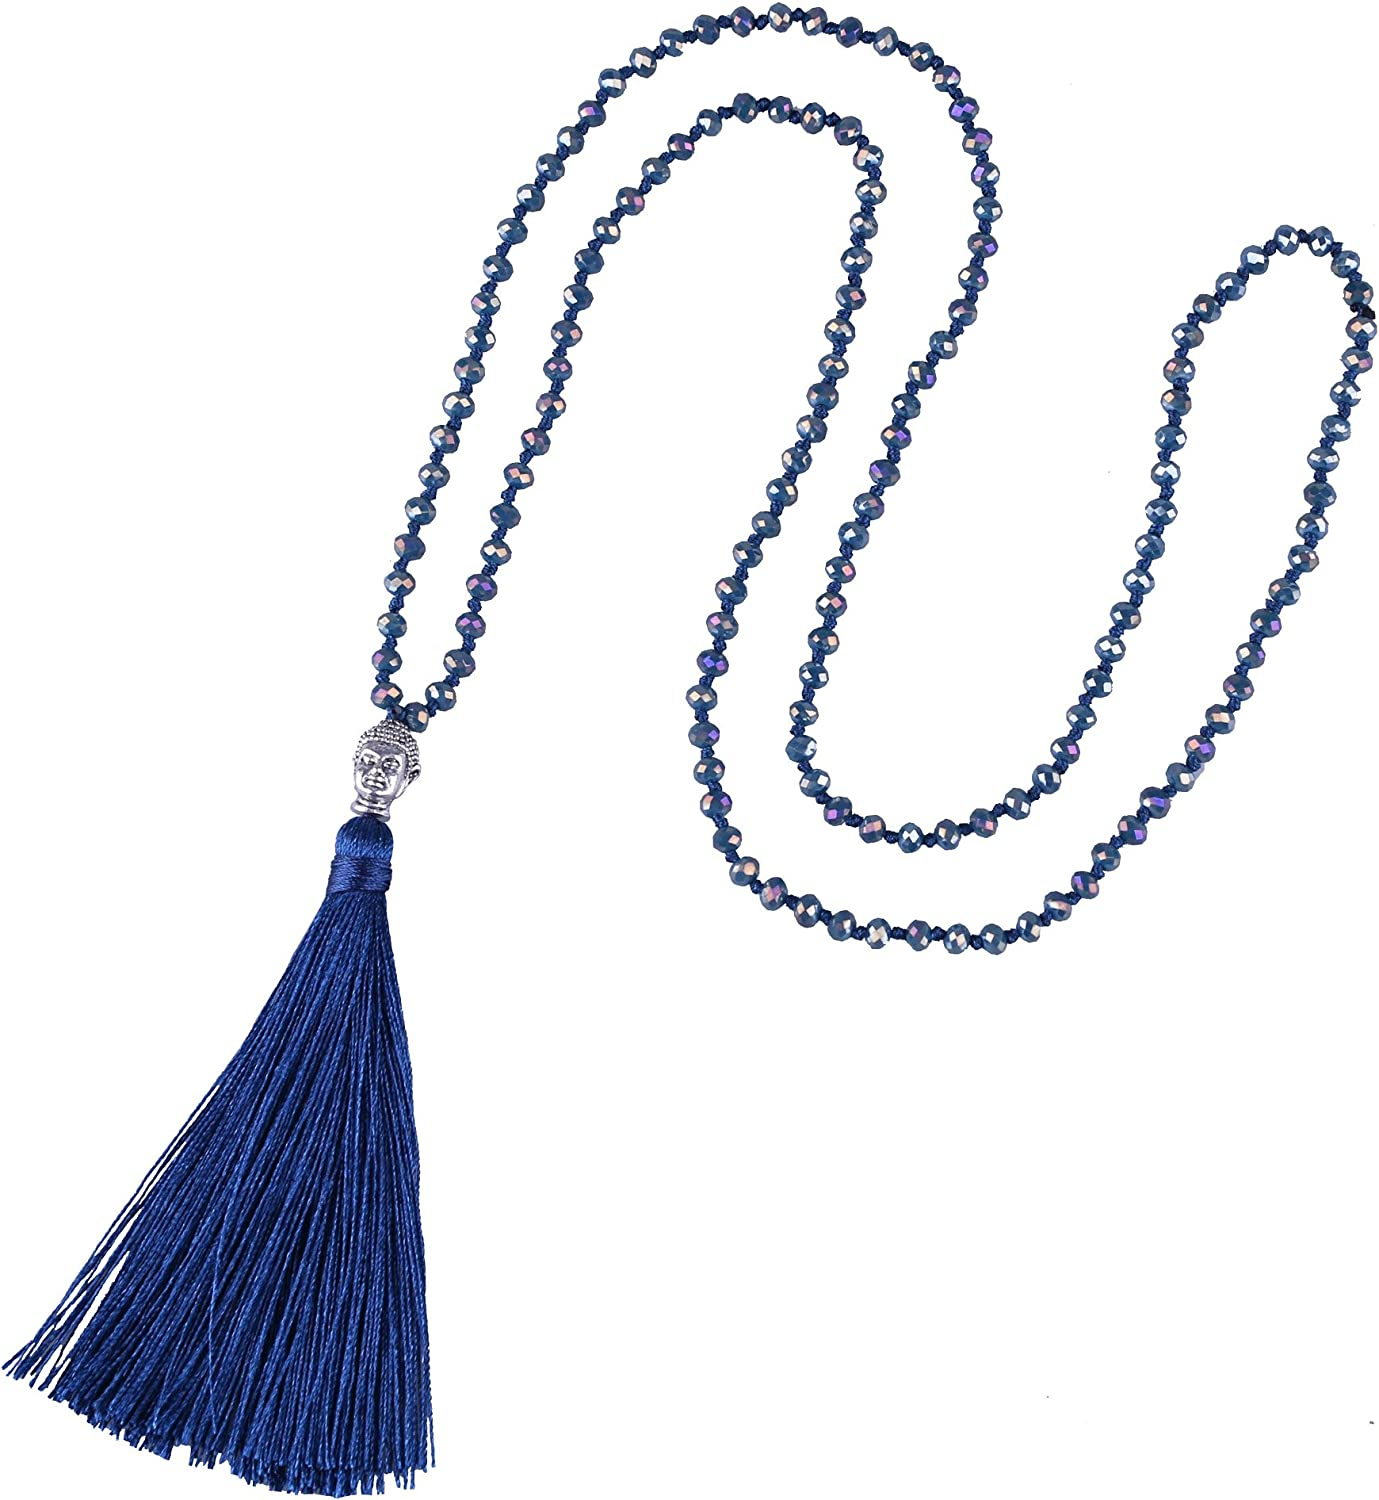 KELITCH Tassel Beads Necklace Buddha Strand Long Statement Jewelry for Women